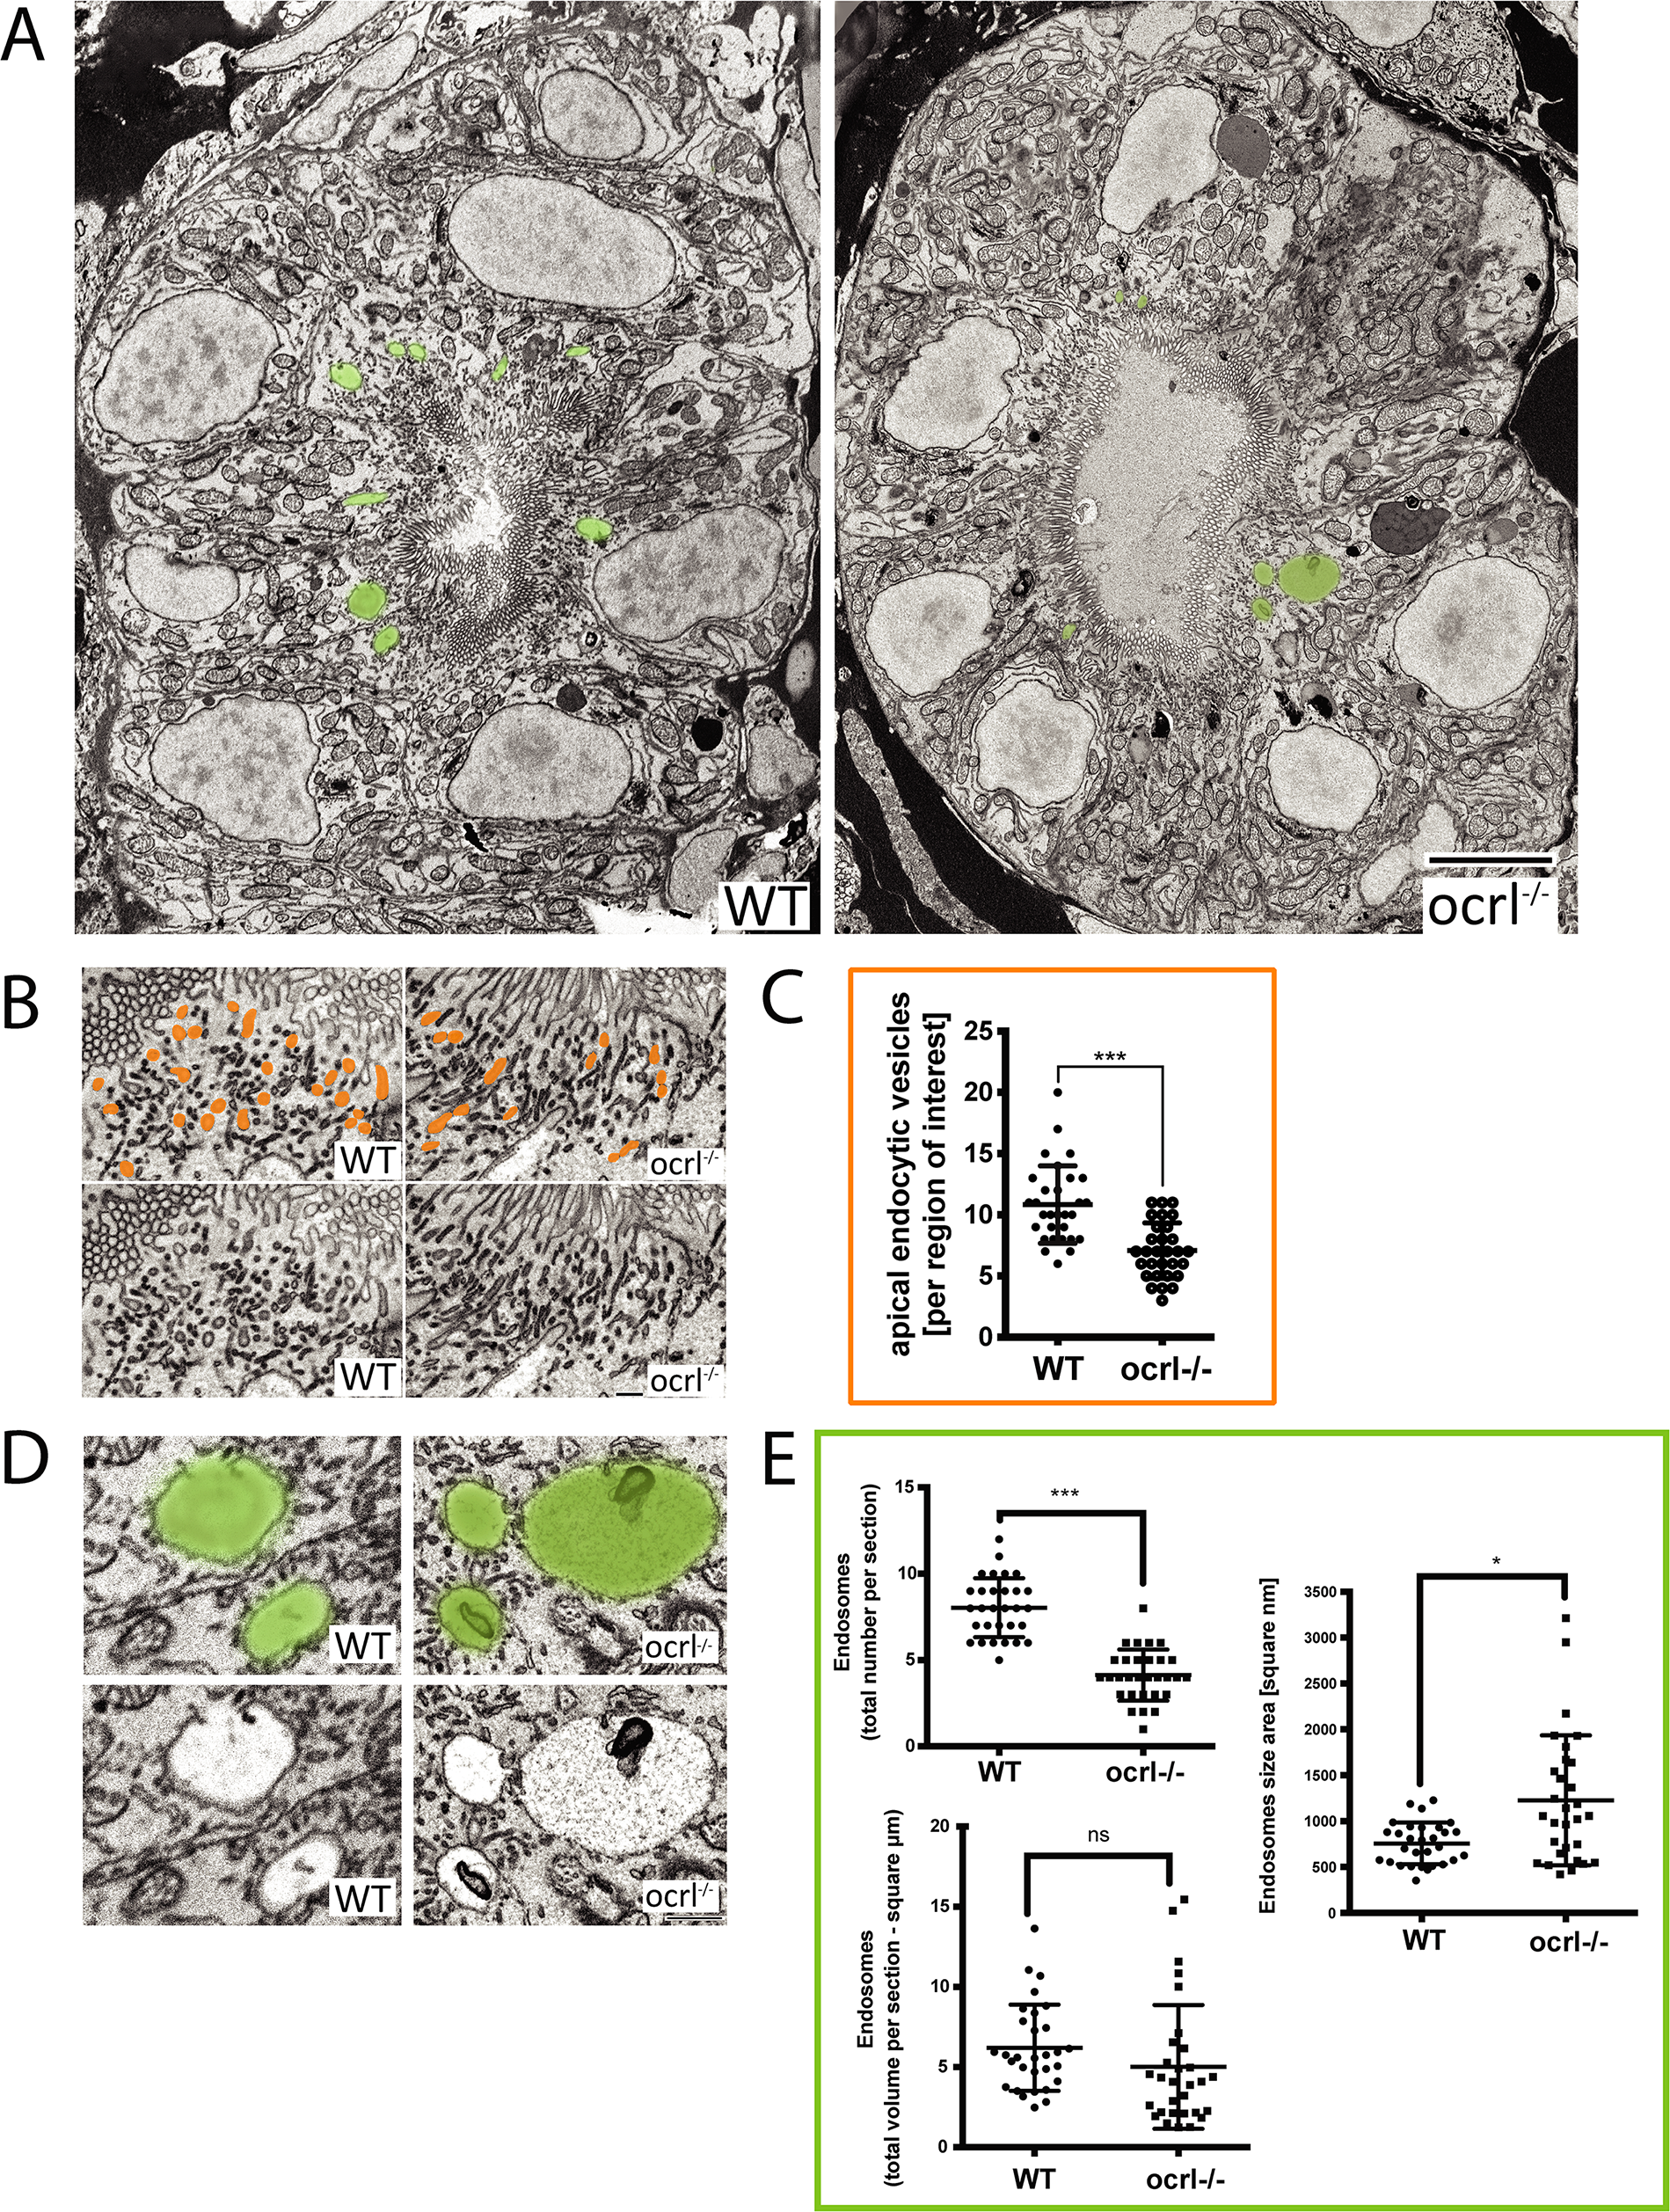 Electron microscopy analysis of endocytic compartments in OCRL1 deficient pronephros.